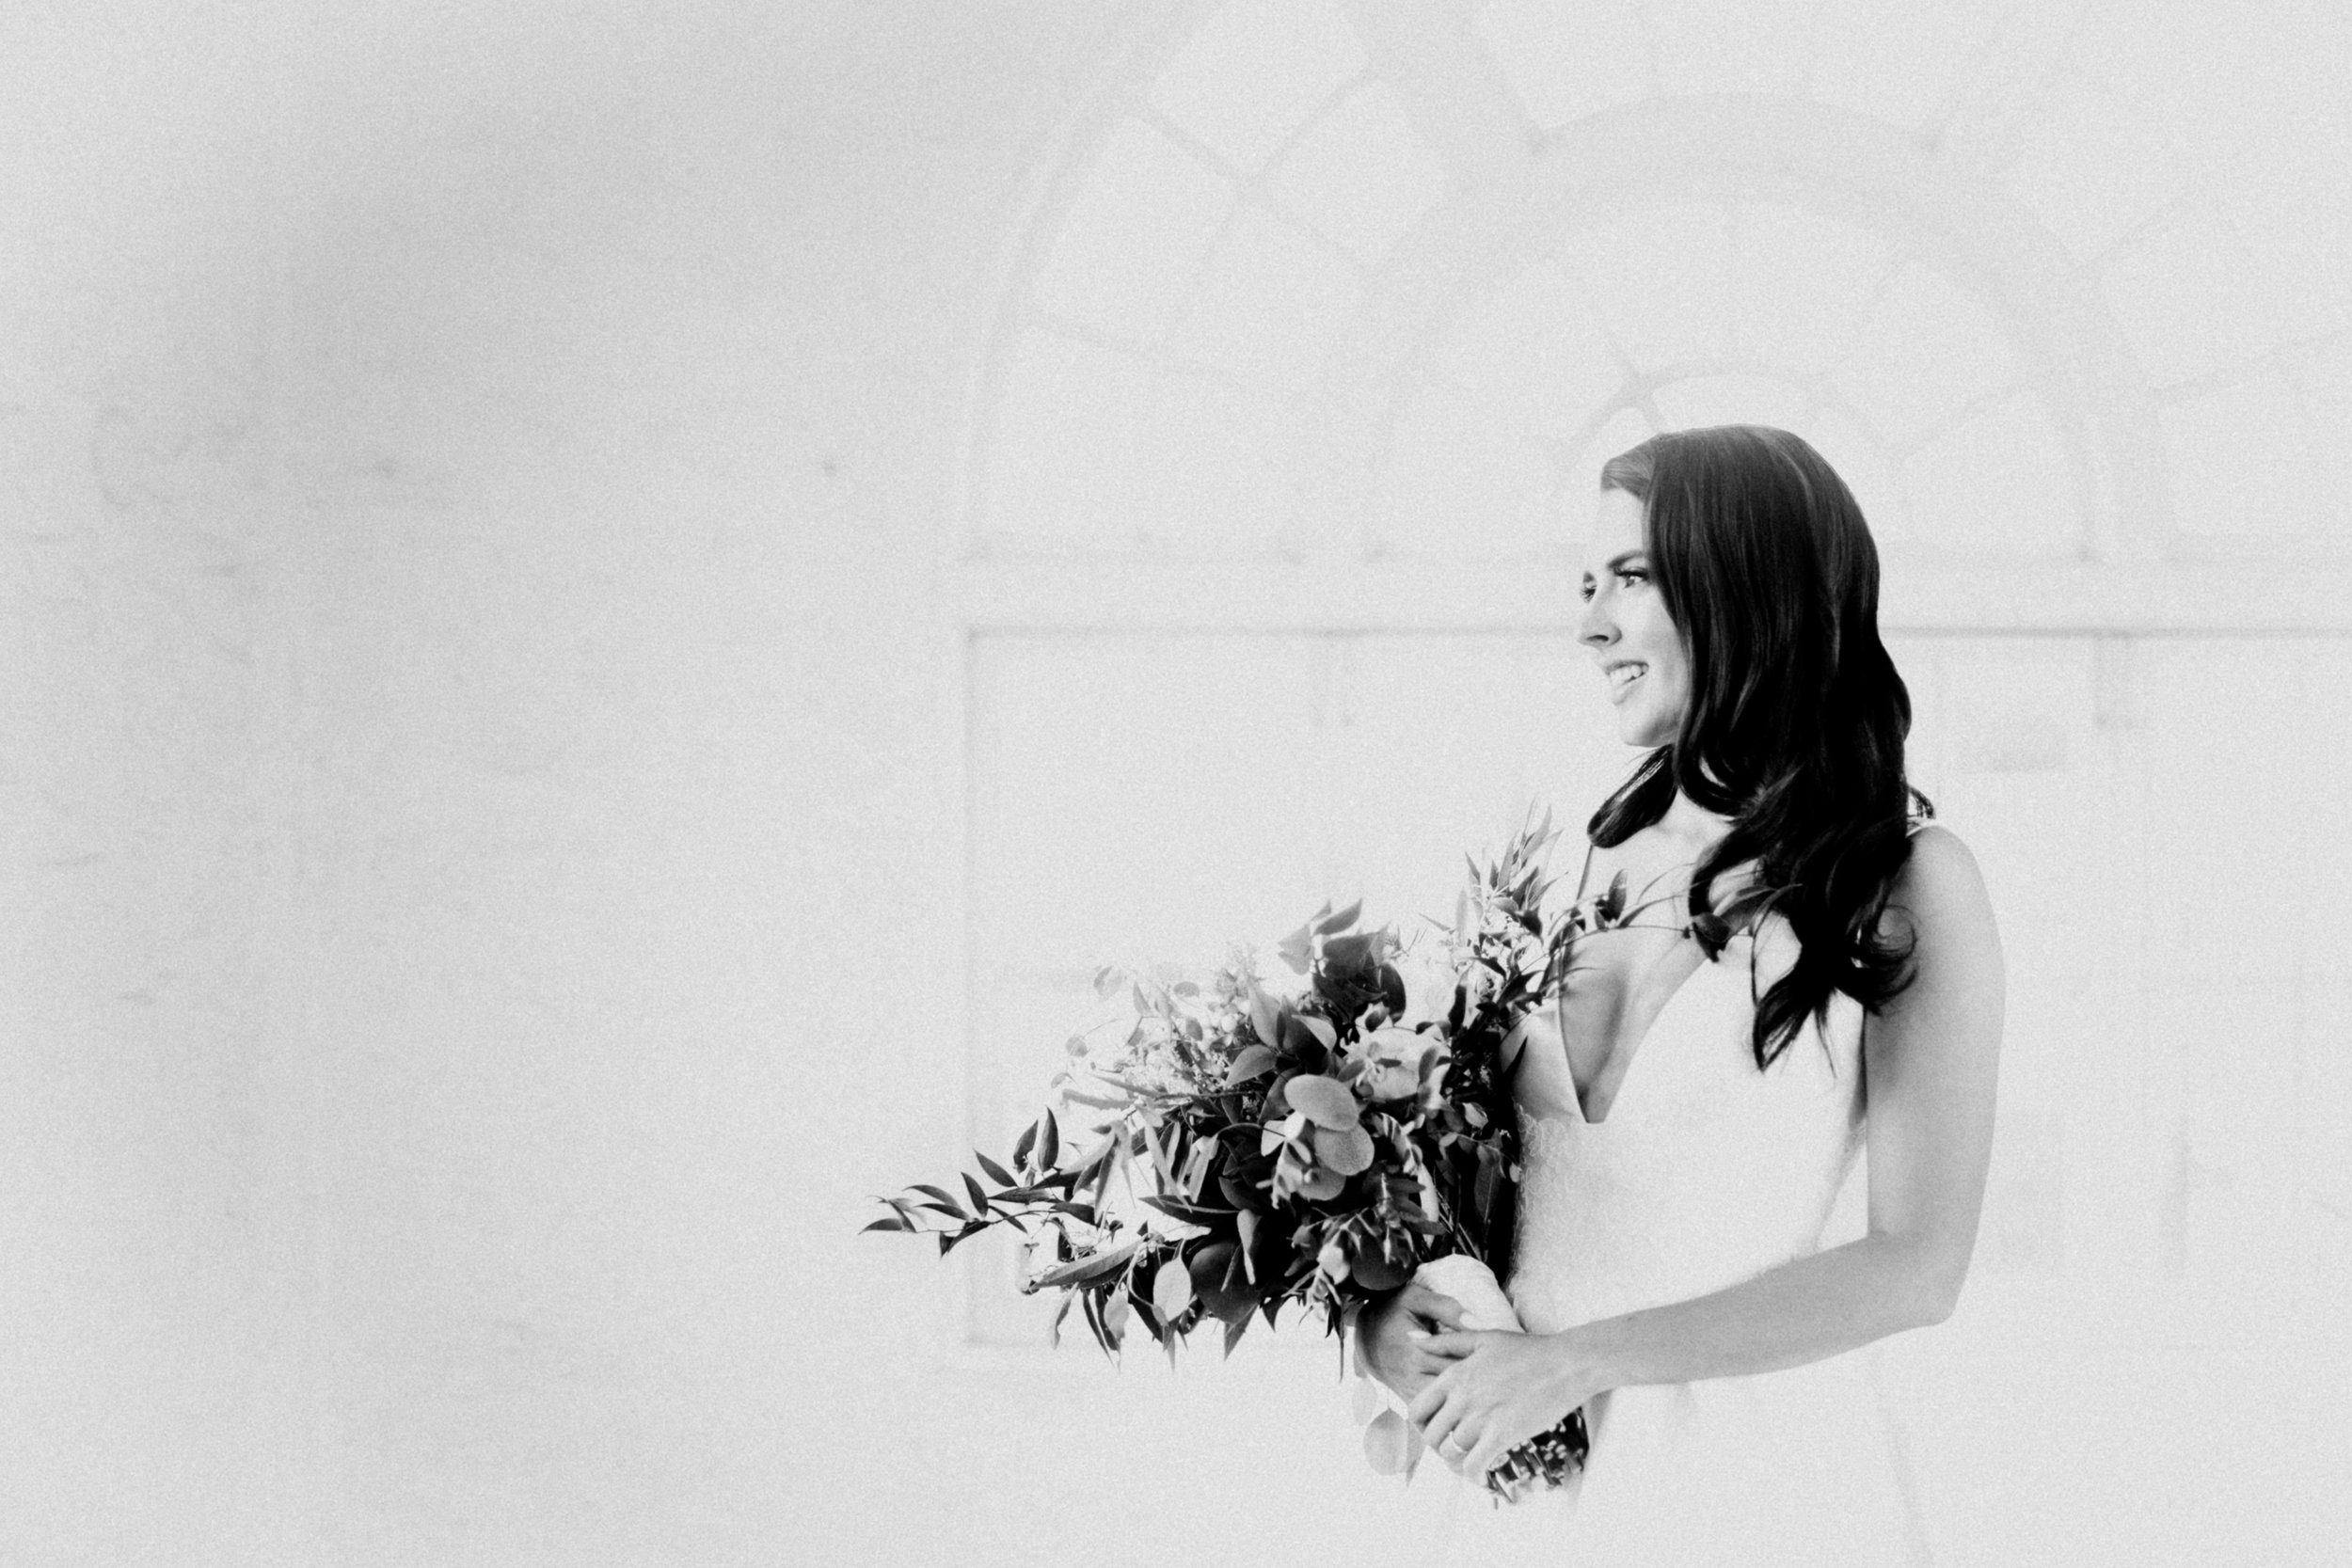 st-anthony-hotel-wedding-photography-10100san-antonio.JPG